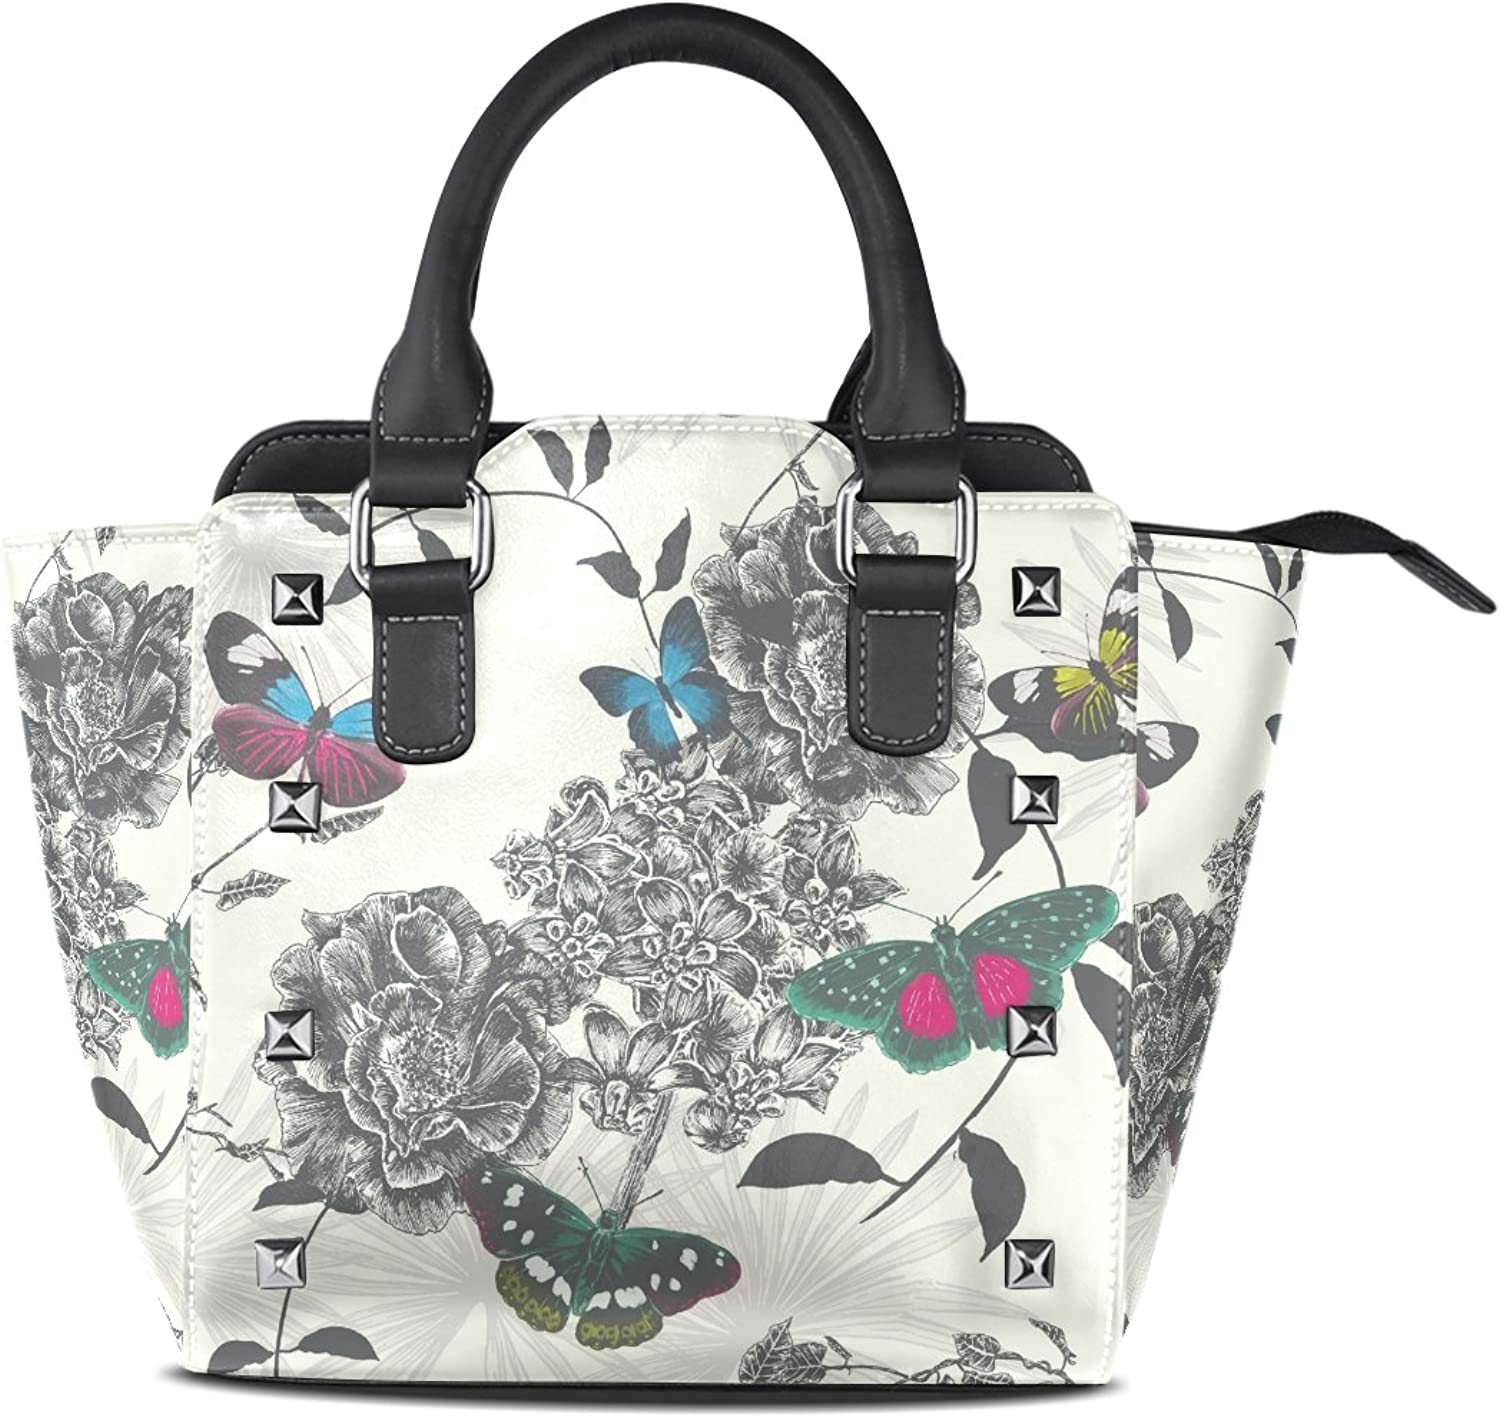 Sunlome Retro Floral Butterfly Print Women's Leather Tote Shoulder Bags Handbags